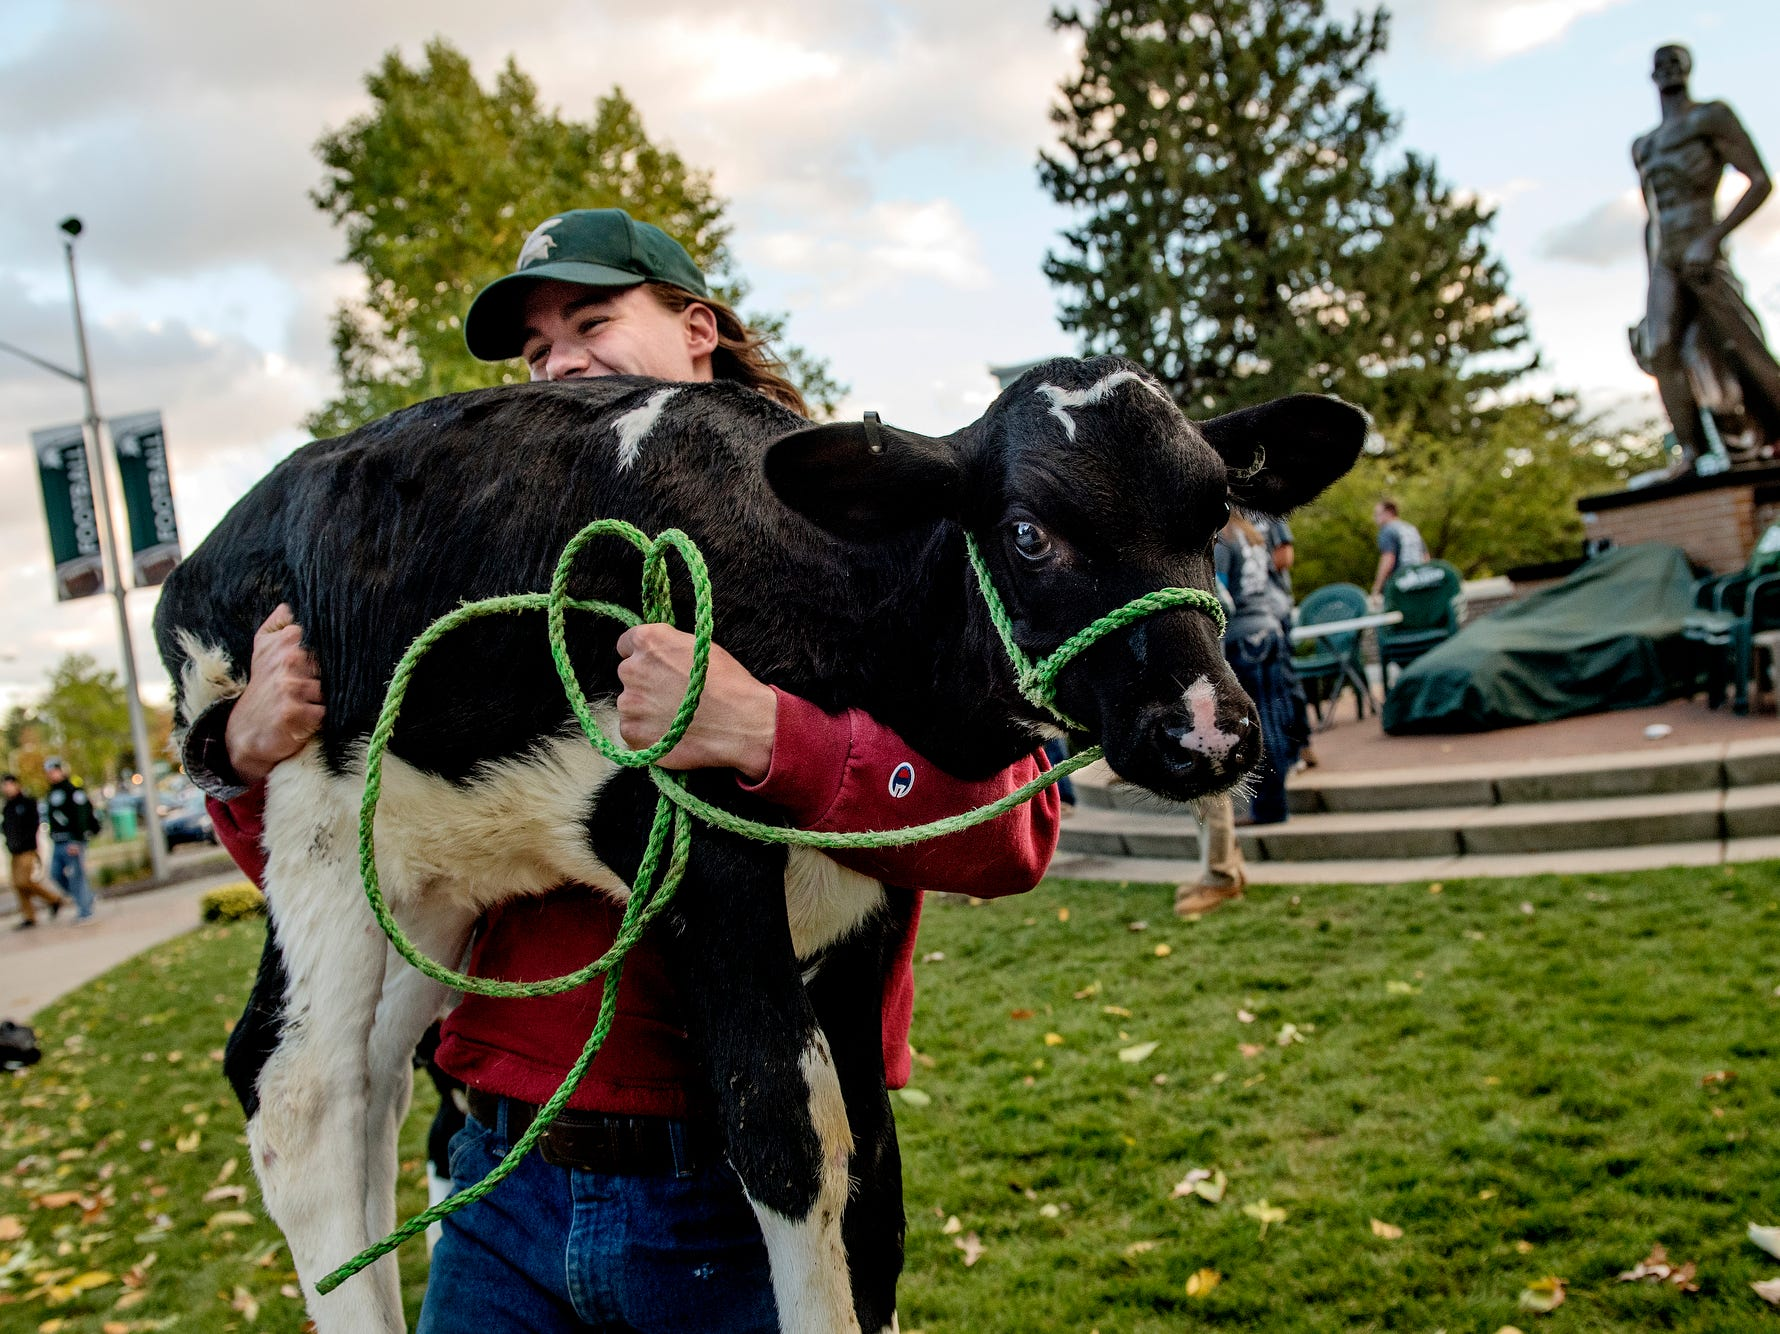 Michigan State University student Joe Heaman carries a calf back to a trailer after members of the MSU Dairy Club posed for a picture in front of the the Sparty statue on campus in East Lansing on Wednesday, Oct. 17, 2018, during Sparty Watch. Dairy Club president Jared Sanders said that every year members, along with two calves, gather at the landmark for a group photo during rivalry week. Sparty Watch, a tradition where Spartan Marching Band members guard the Sparty statue, takes place the week leading up to the MSU vs. Michigan football game.